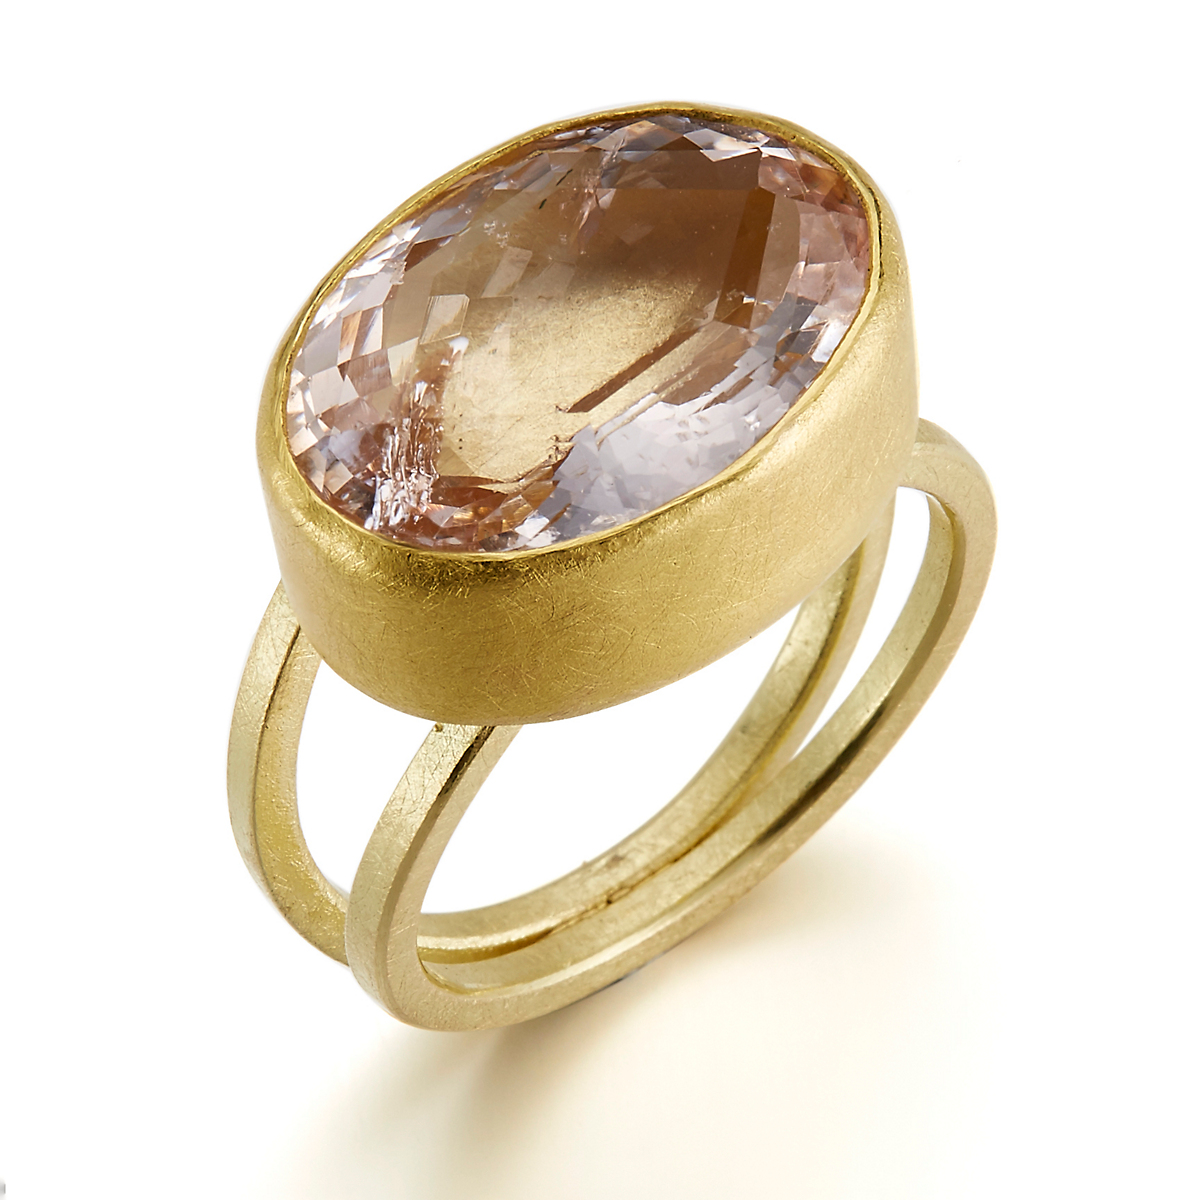 Petra Class Oval Faceted Morganite Ring with Split Band